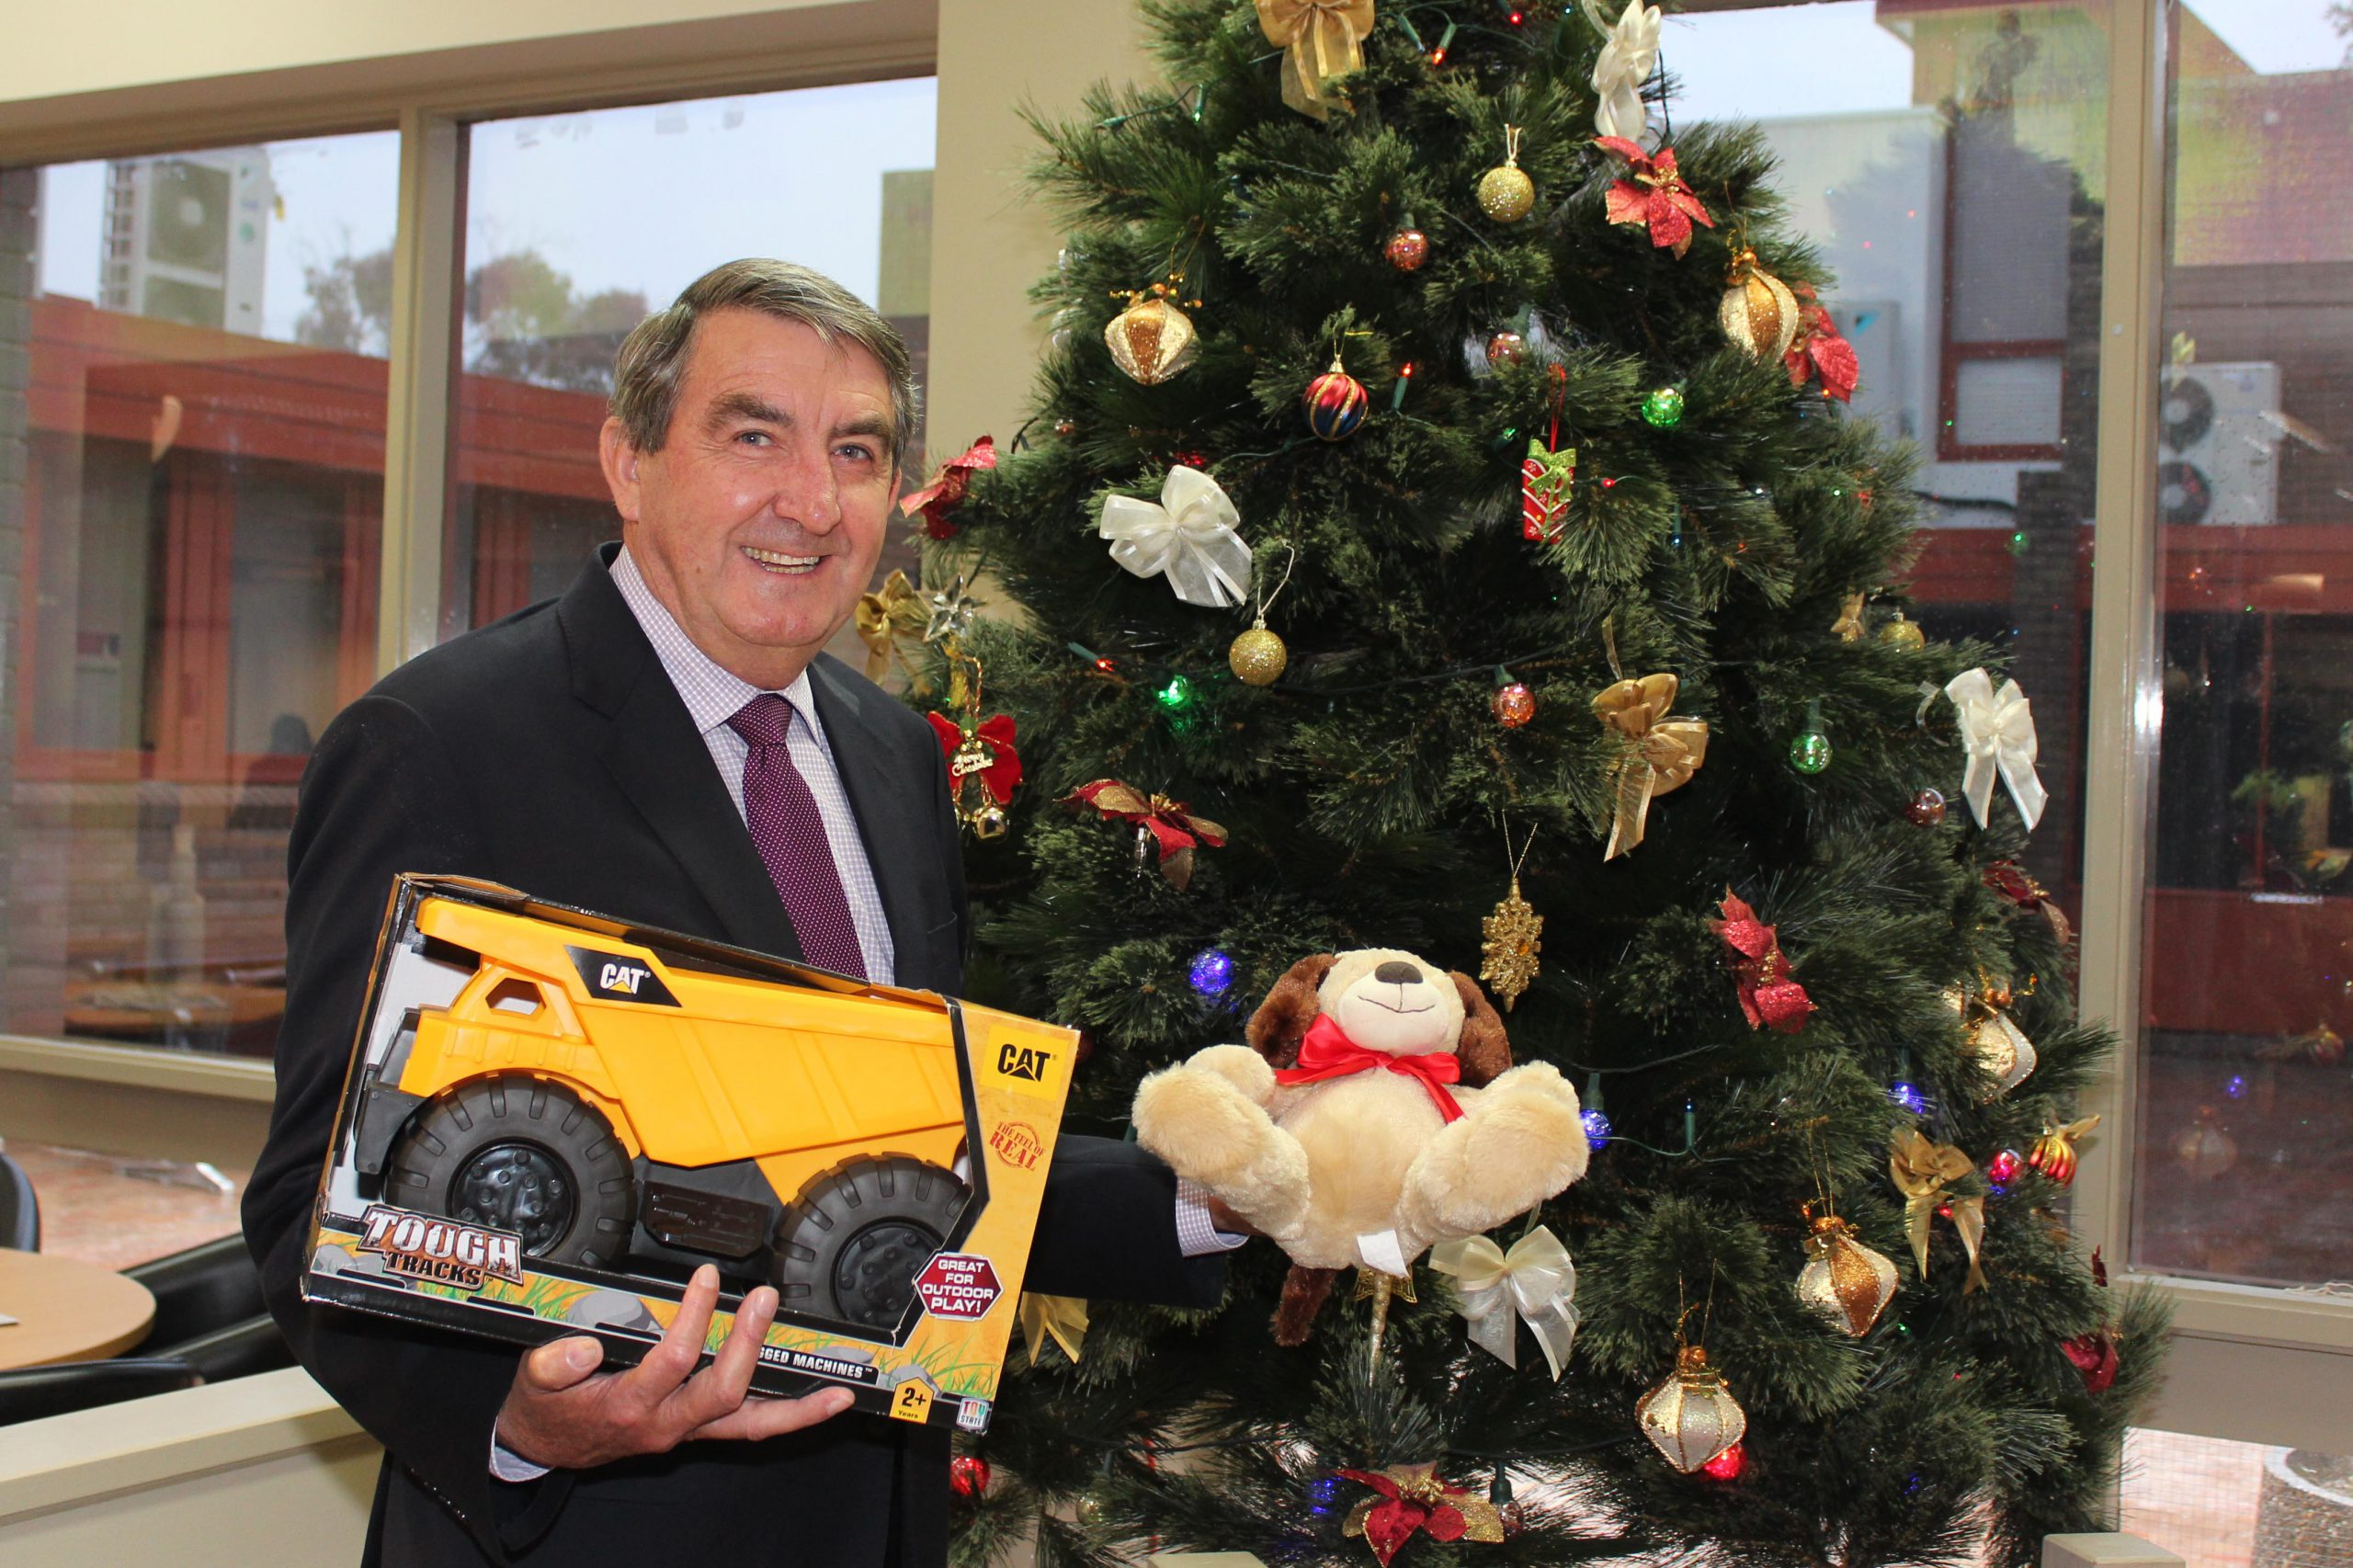 Mayor Duncan Gair holding gift in front of 2018 Christmas Giving Tree